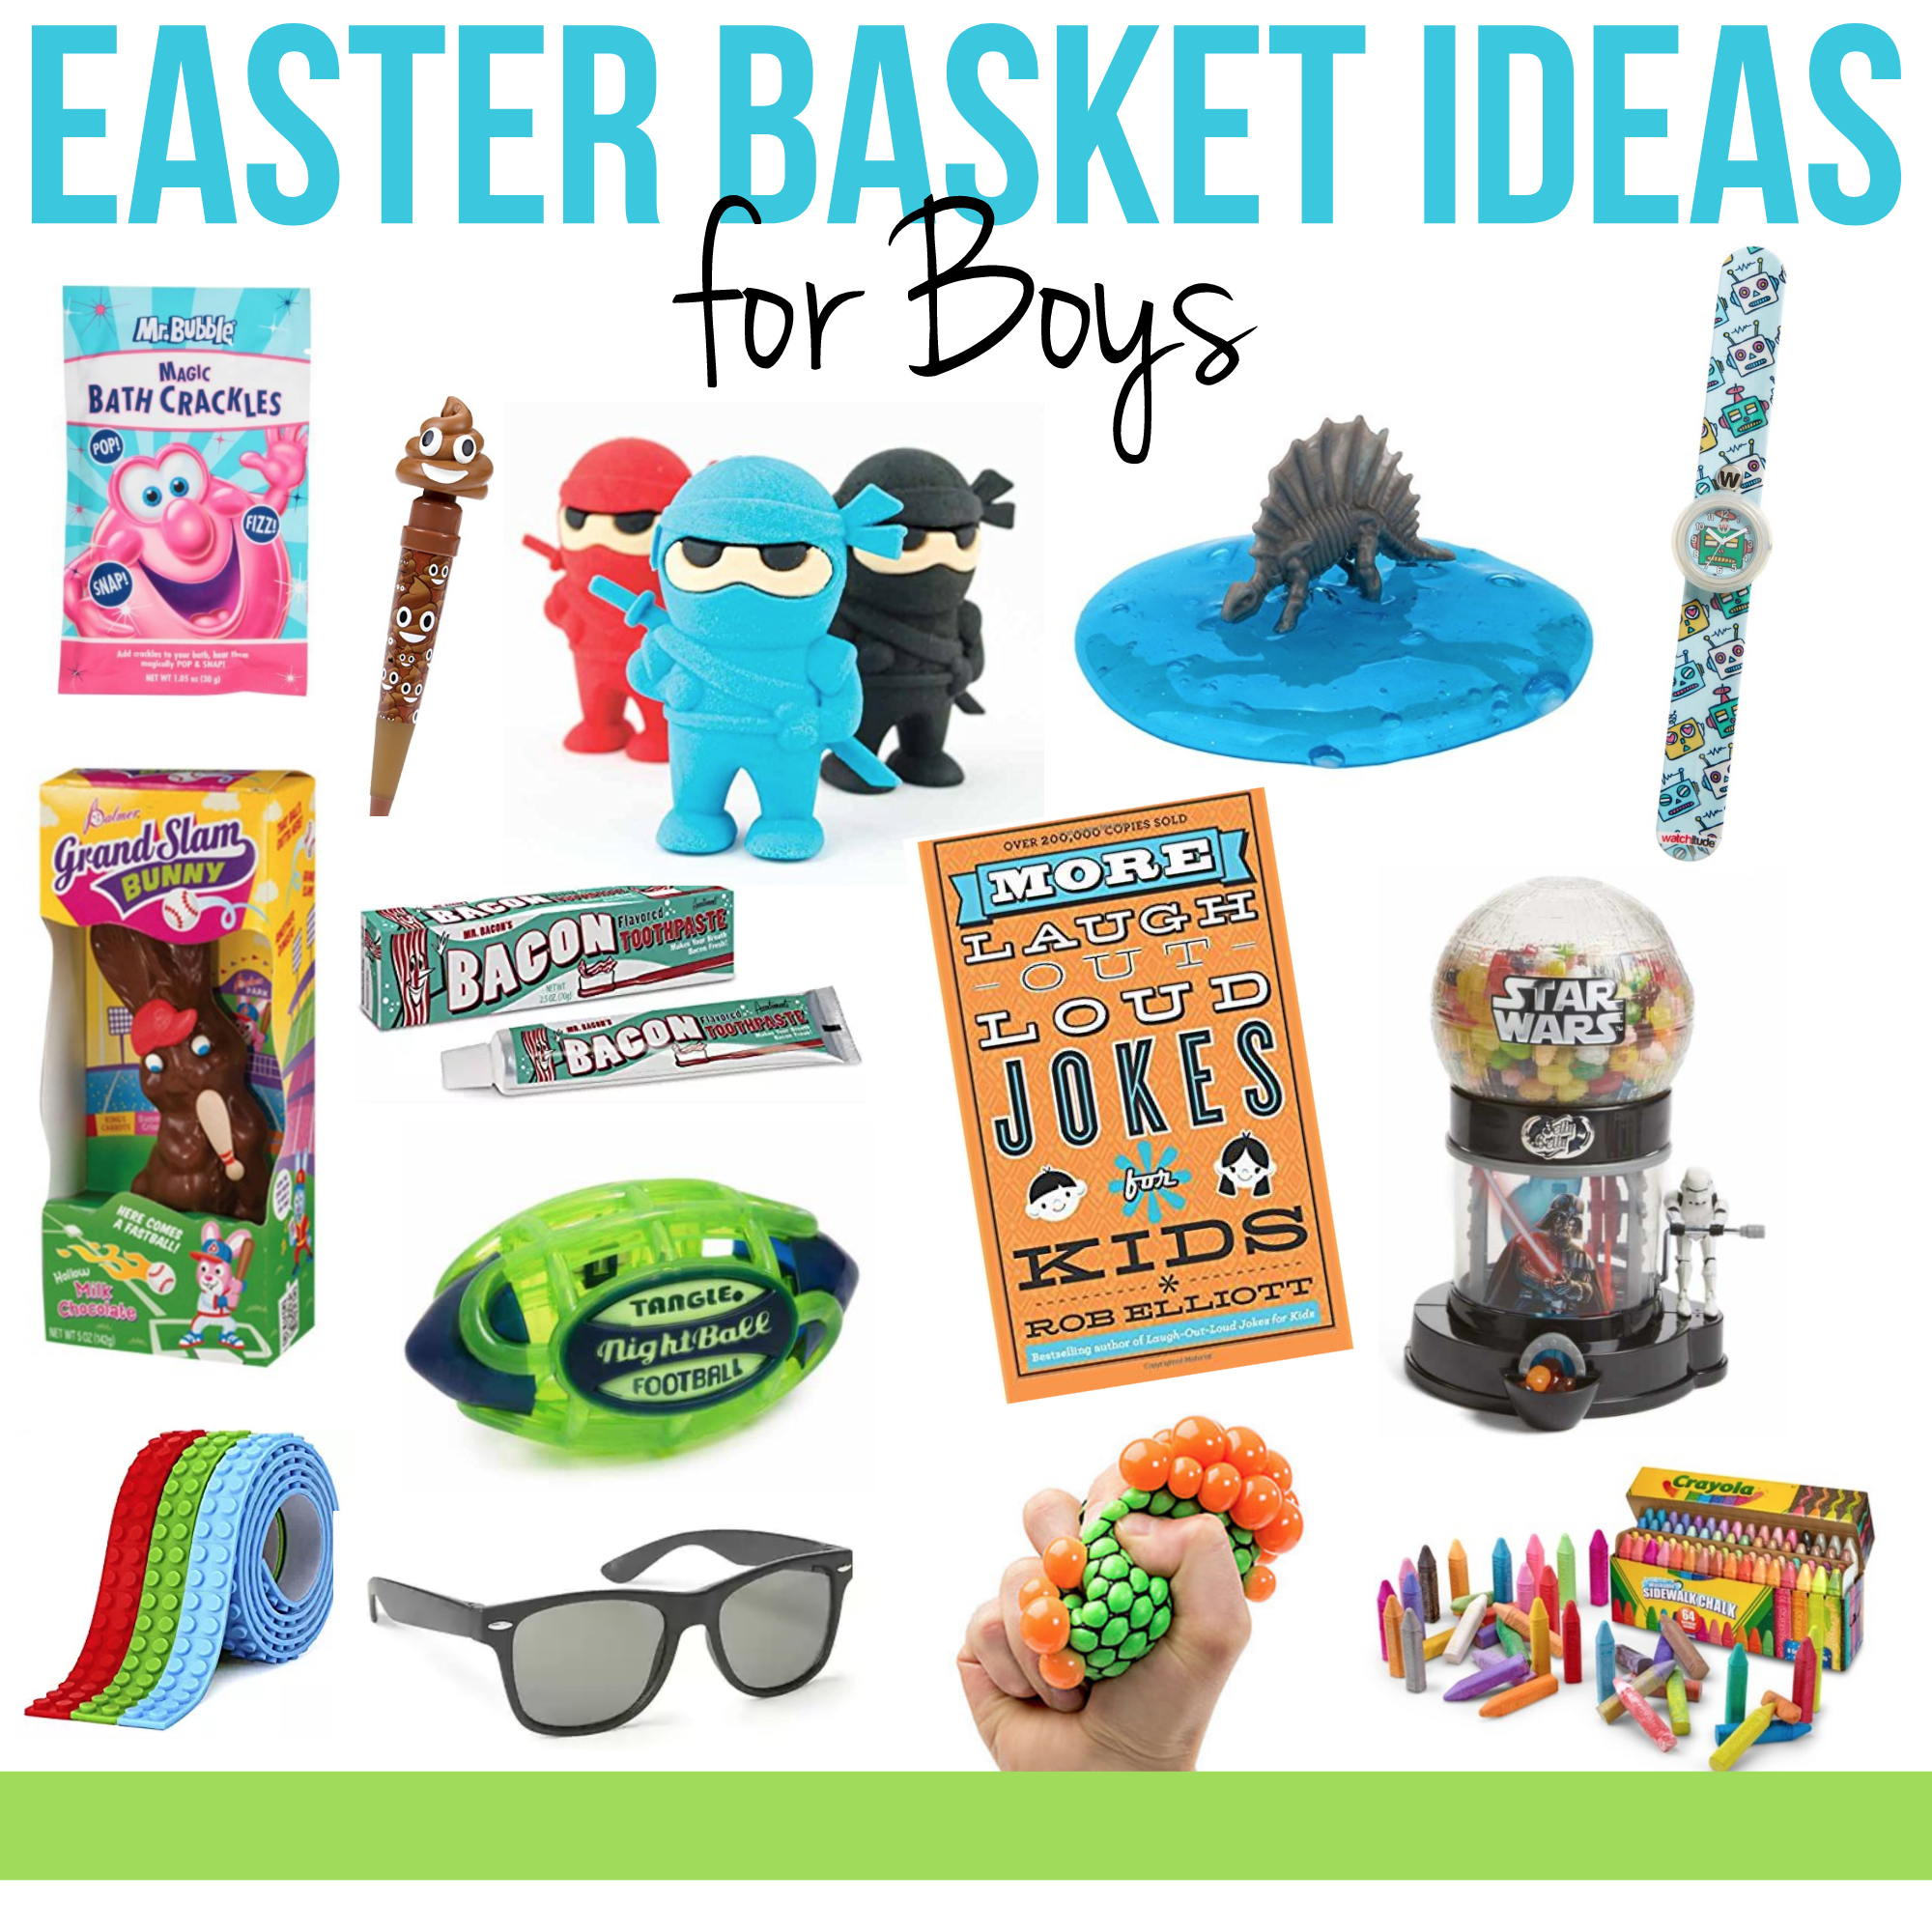 Easter basket ideas for boys on myfrugaladventures.com. Cute little gift ideas for boys.